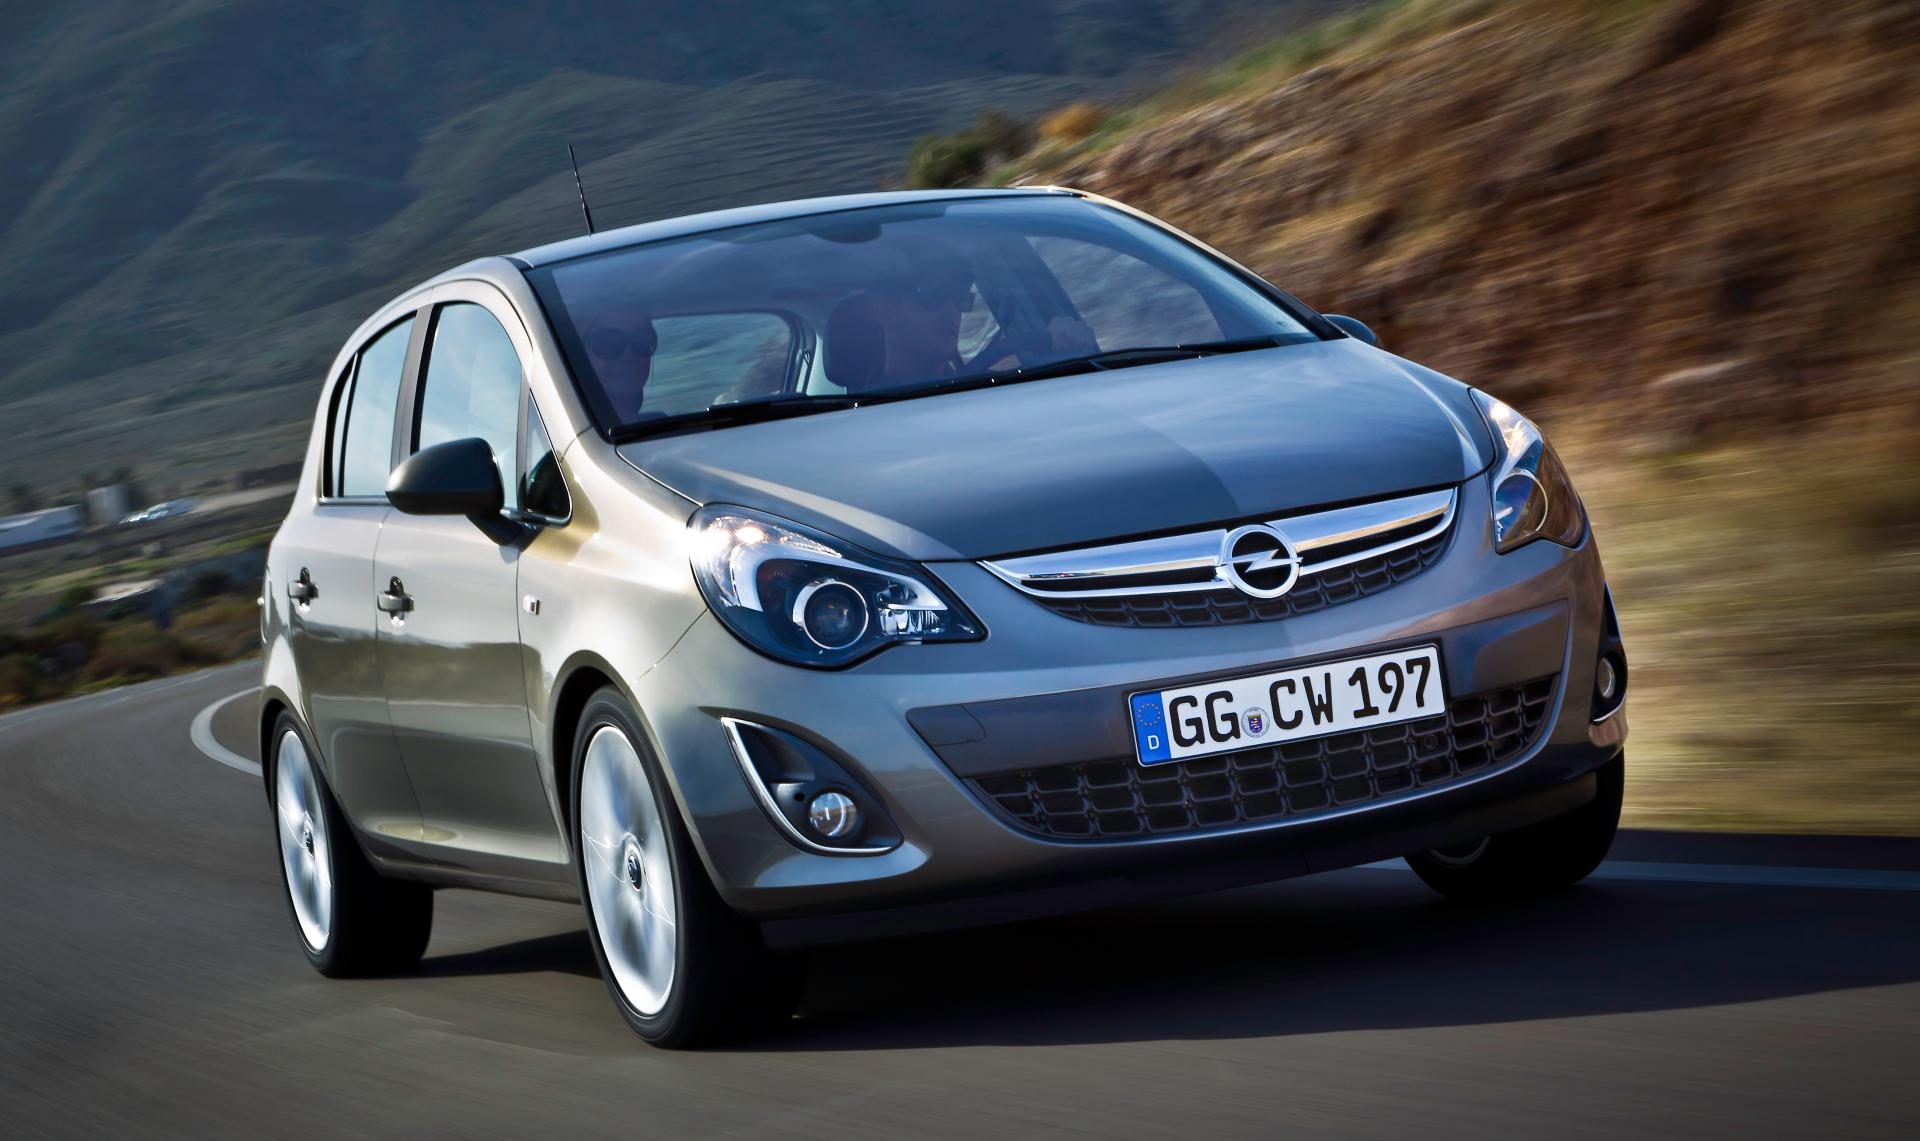 2012 opel corsa images photo opel corsa wallpaper image 2012. Black Bedroom Furniture Sets. Home Design Ideas